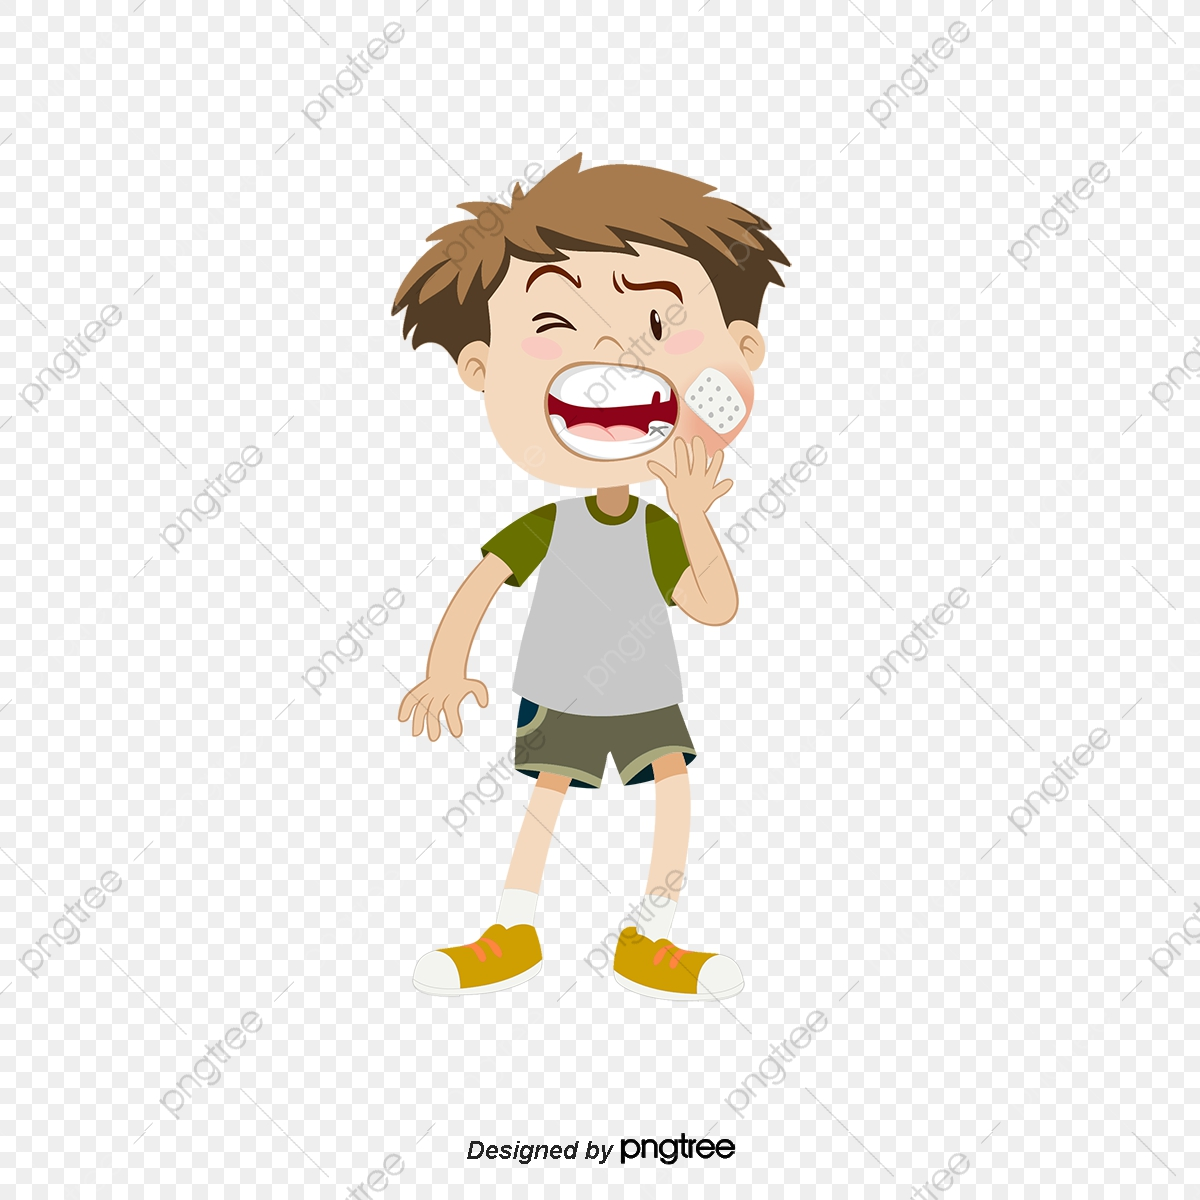 Cartoon Of A Small Man S Toothache Dental Bacteria Dental Cartoon Of Germs Png Transparent Clipart Image And Psd File For Free Download